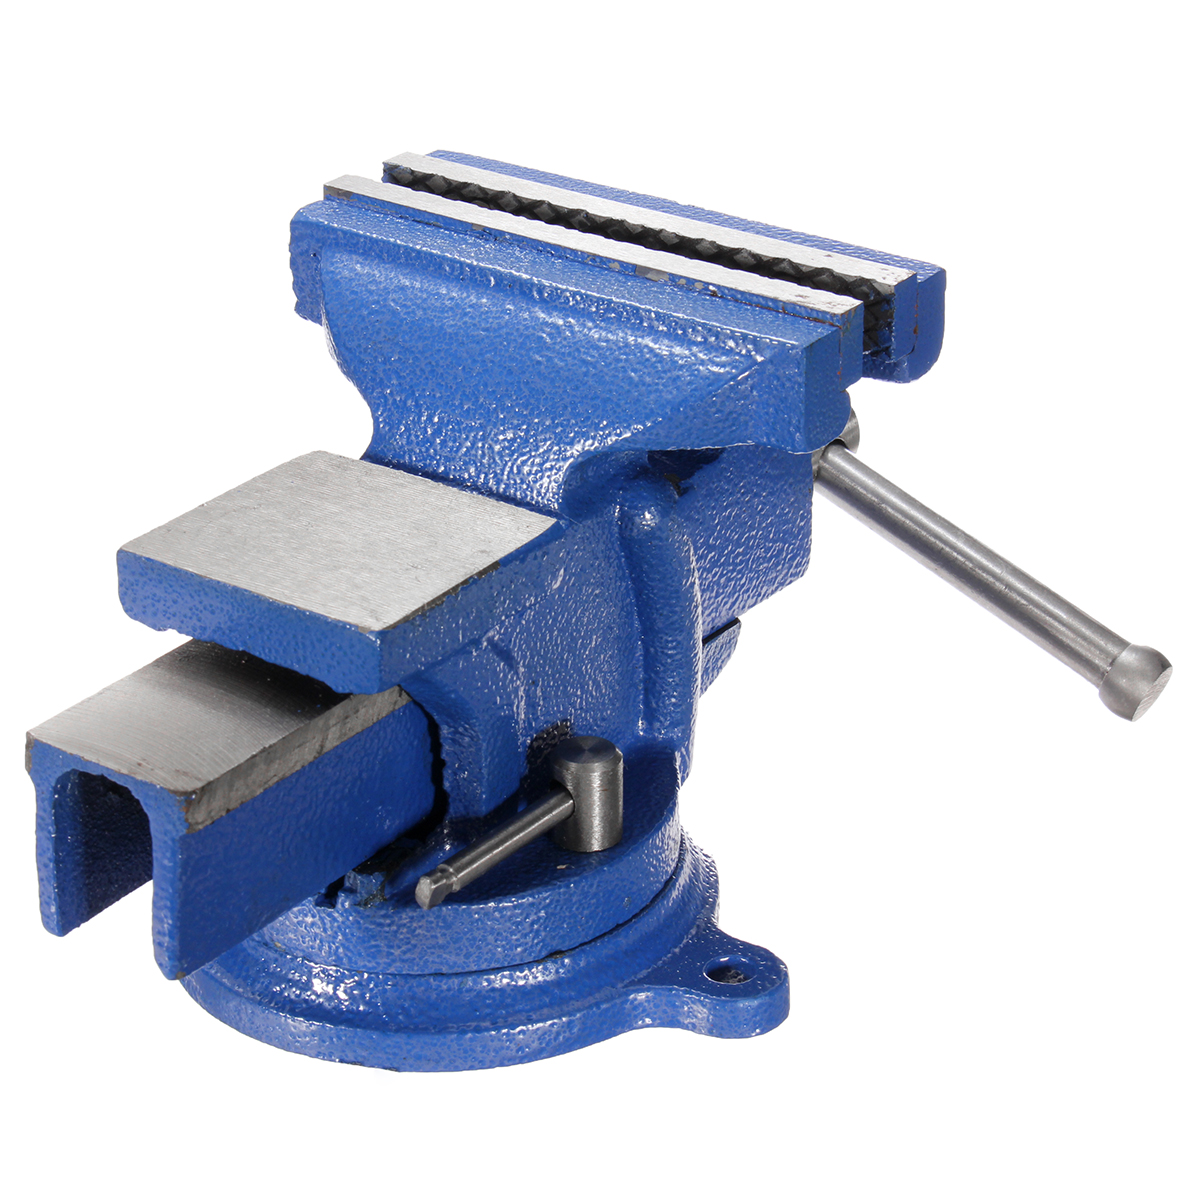 5 Inch Bench Vise With Anvil Swivel Locking Base Table Heavy Duty Steel Usa Stoc Ebay